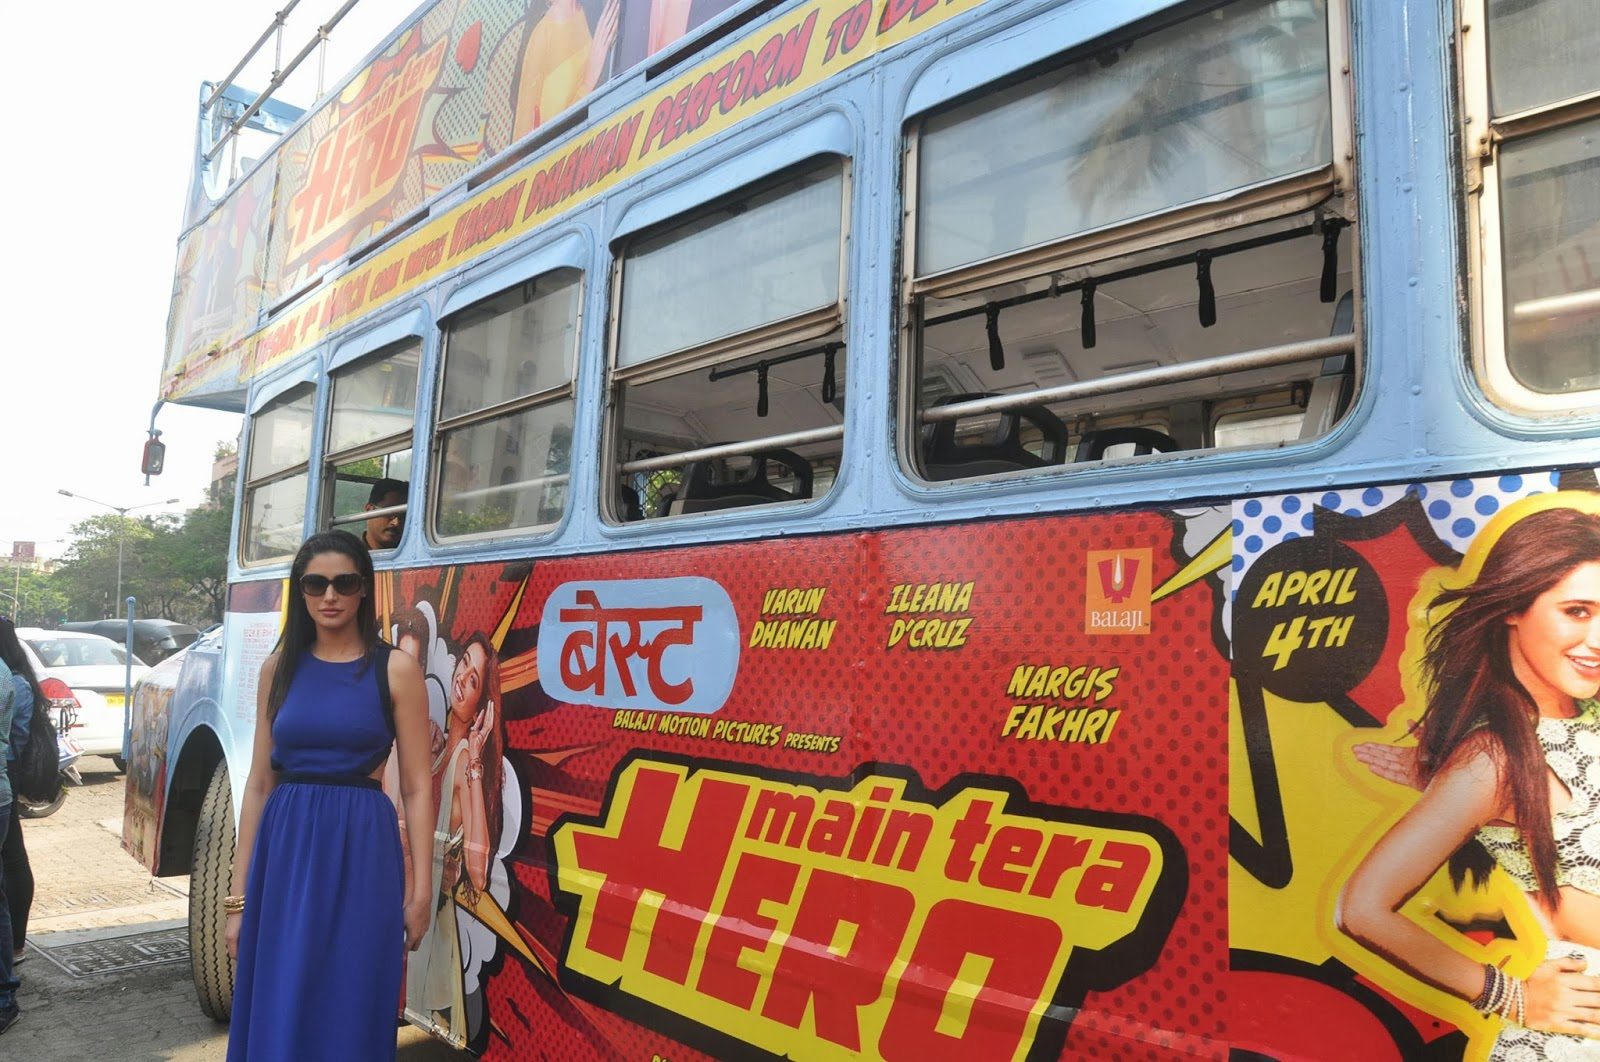 Varun Dhawan & Nargis promotes Main Tera Hero on Bus Ride